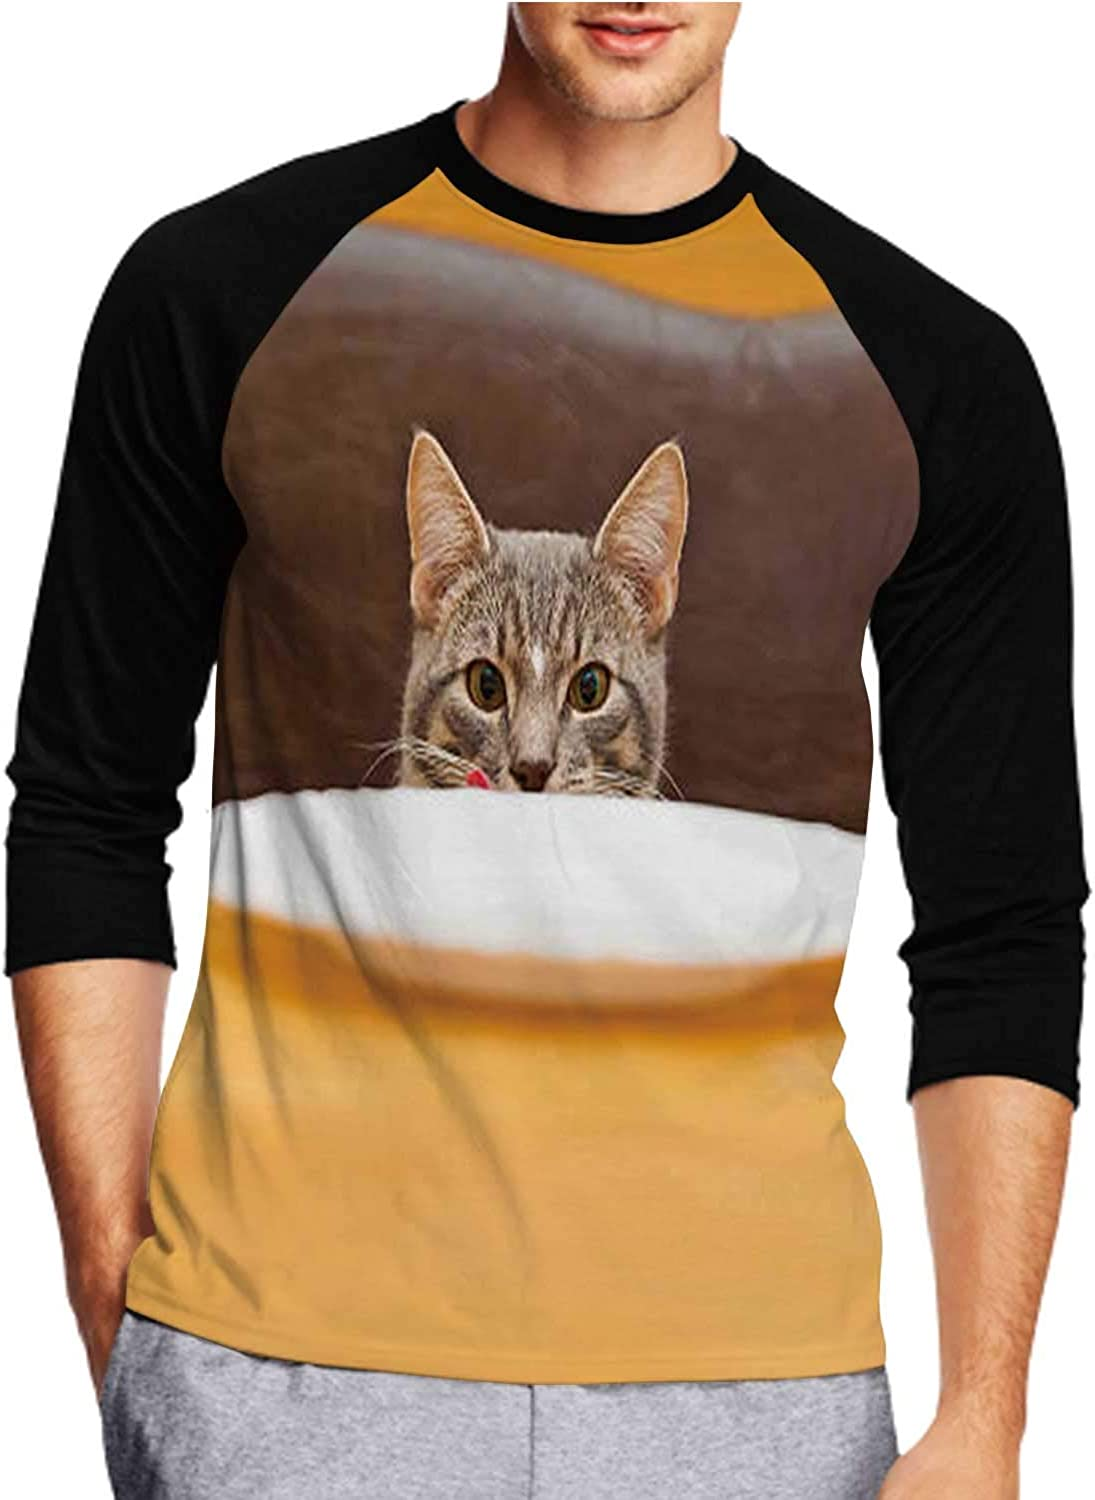 C COABALLA Black and White Mix-Breed Puppy Looks at Camera tilts - Netherlands,Men's Front Printed Middle Sleeve T-Shirt